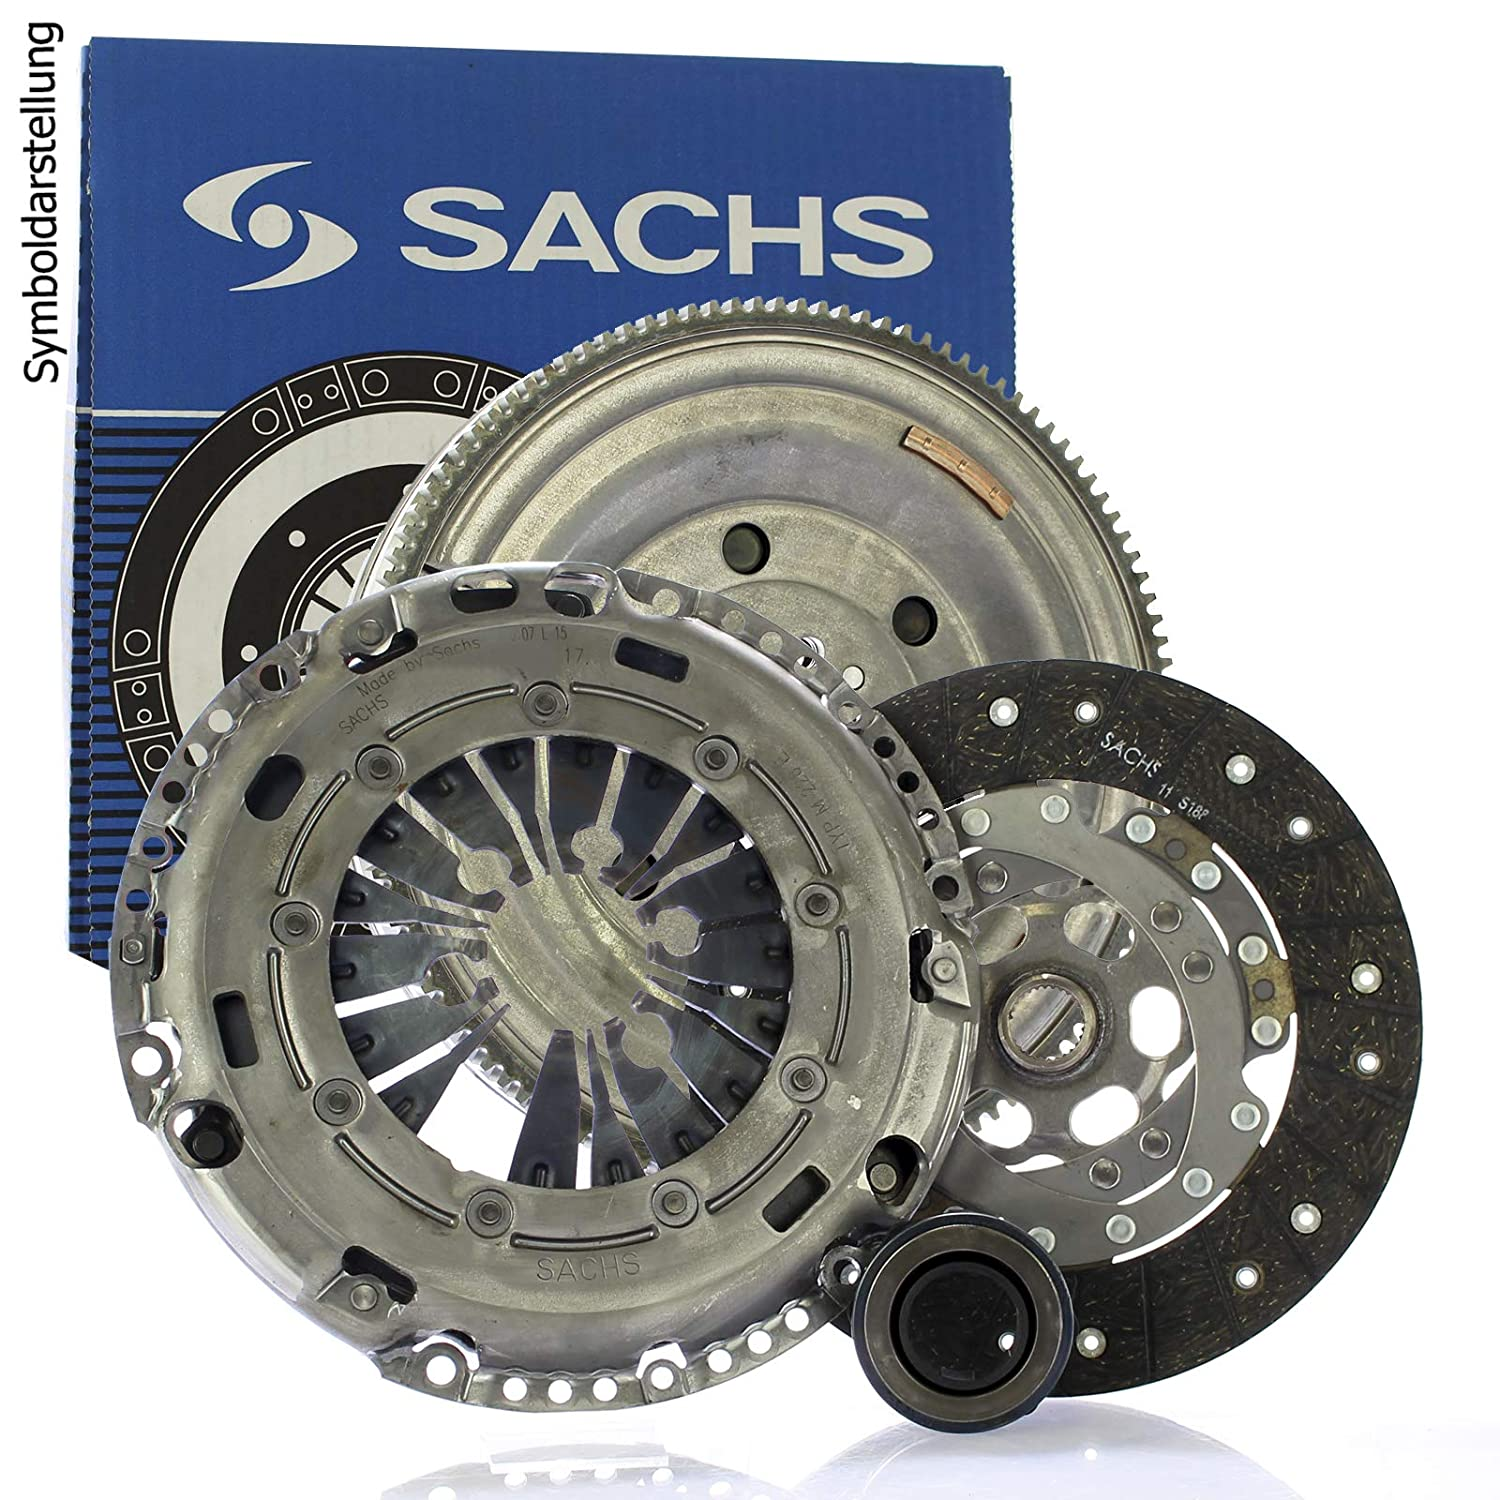 Sachs 2290 601 026 Sets para Embrague